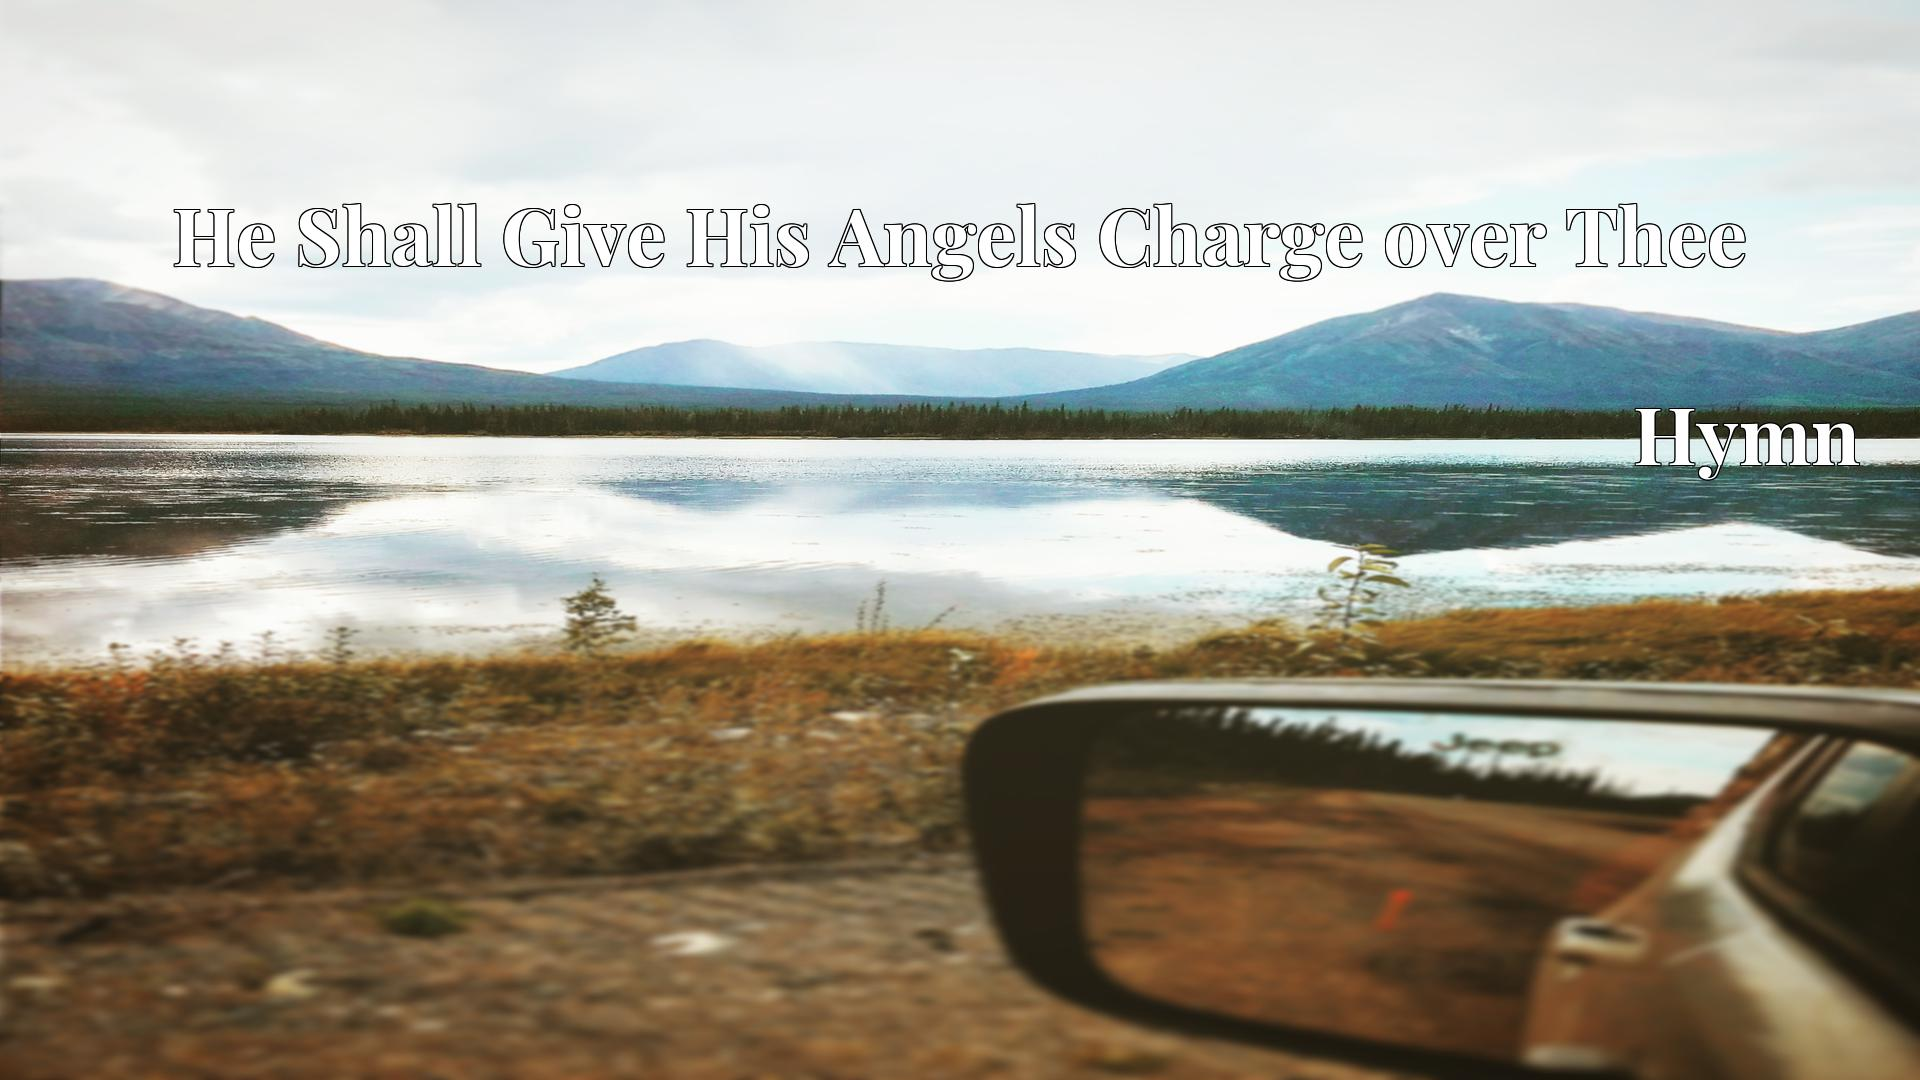 He Shall Give His Angels Charge over Thee - Hymn